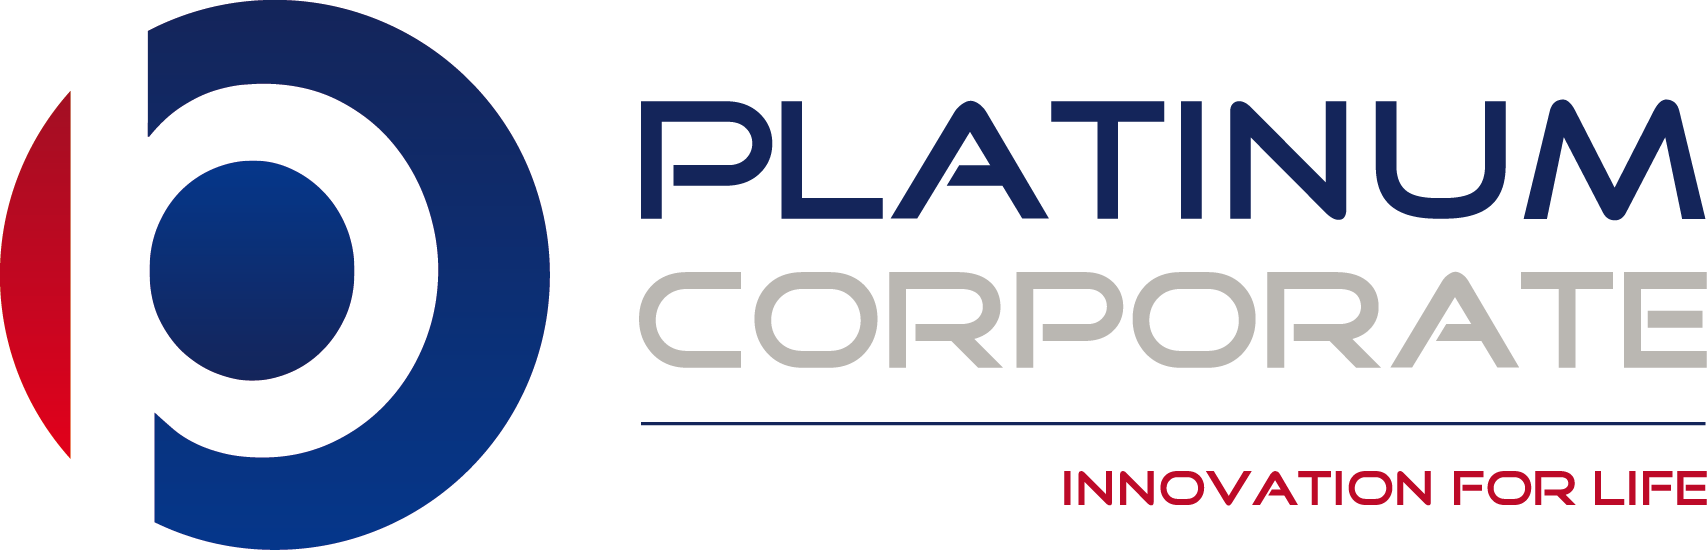 Platinum Corporate